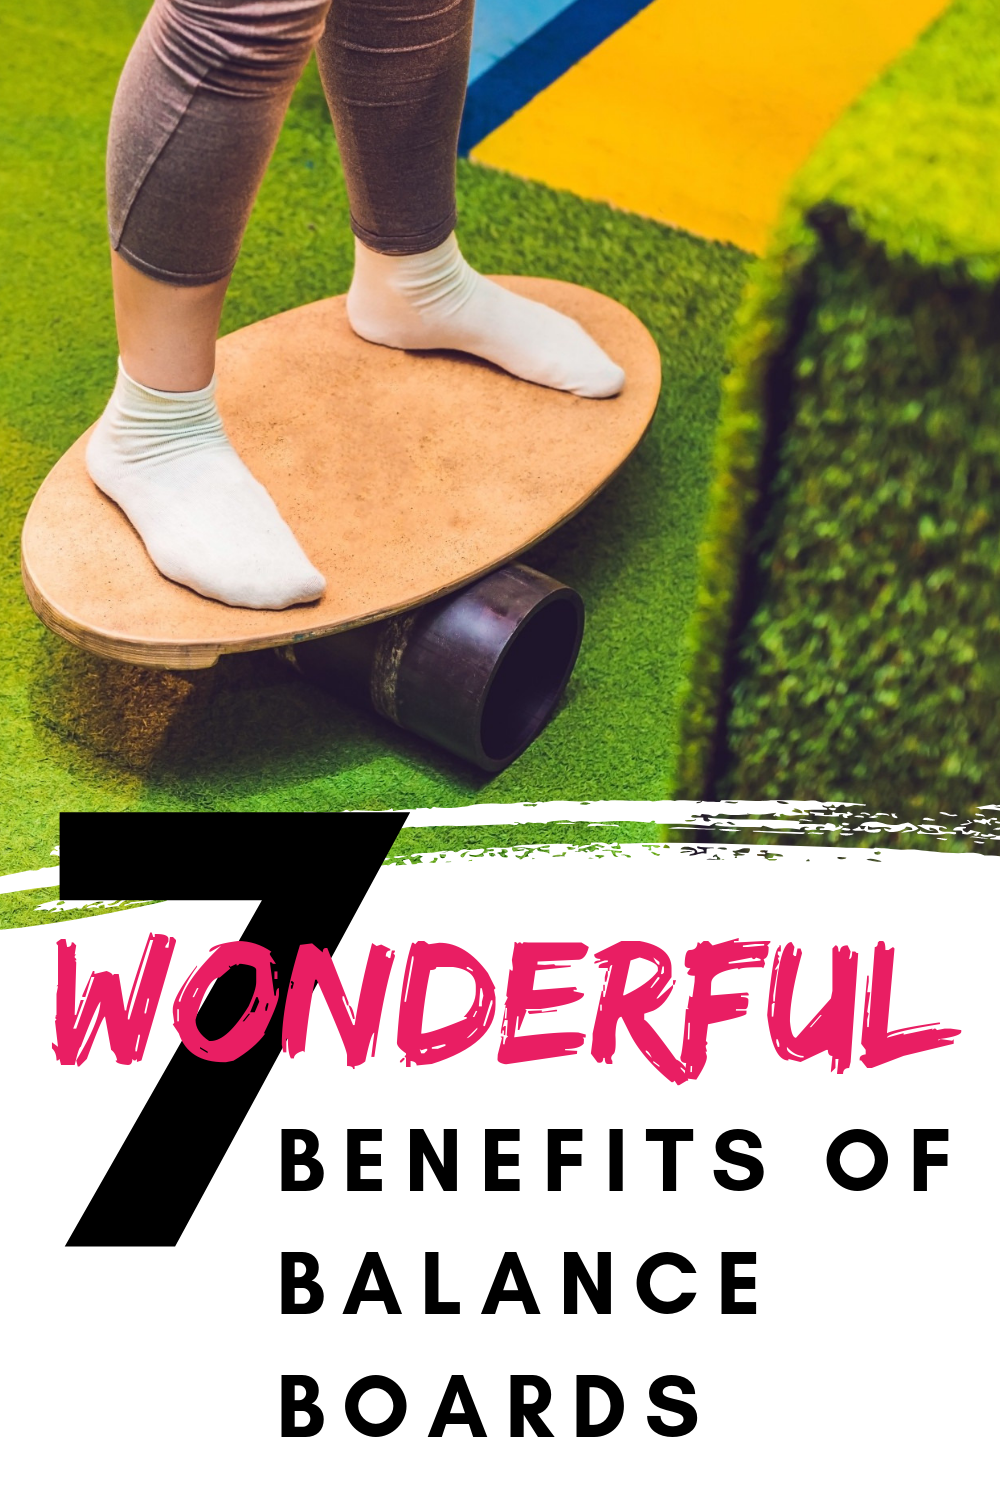 Balance boards are a wonderful device that provide many health benefits and can easily fit into your...